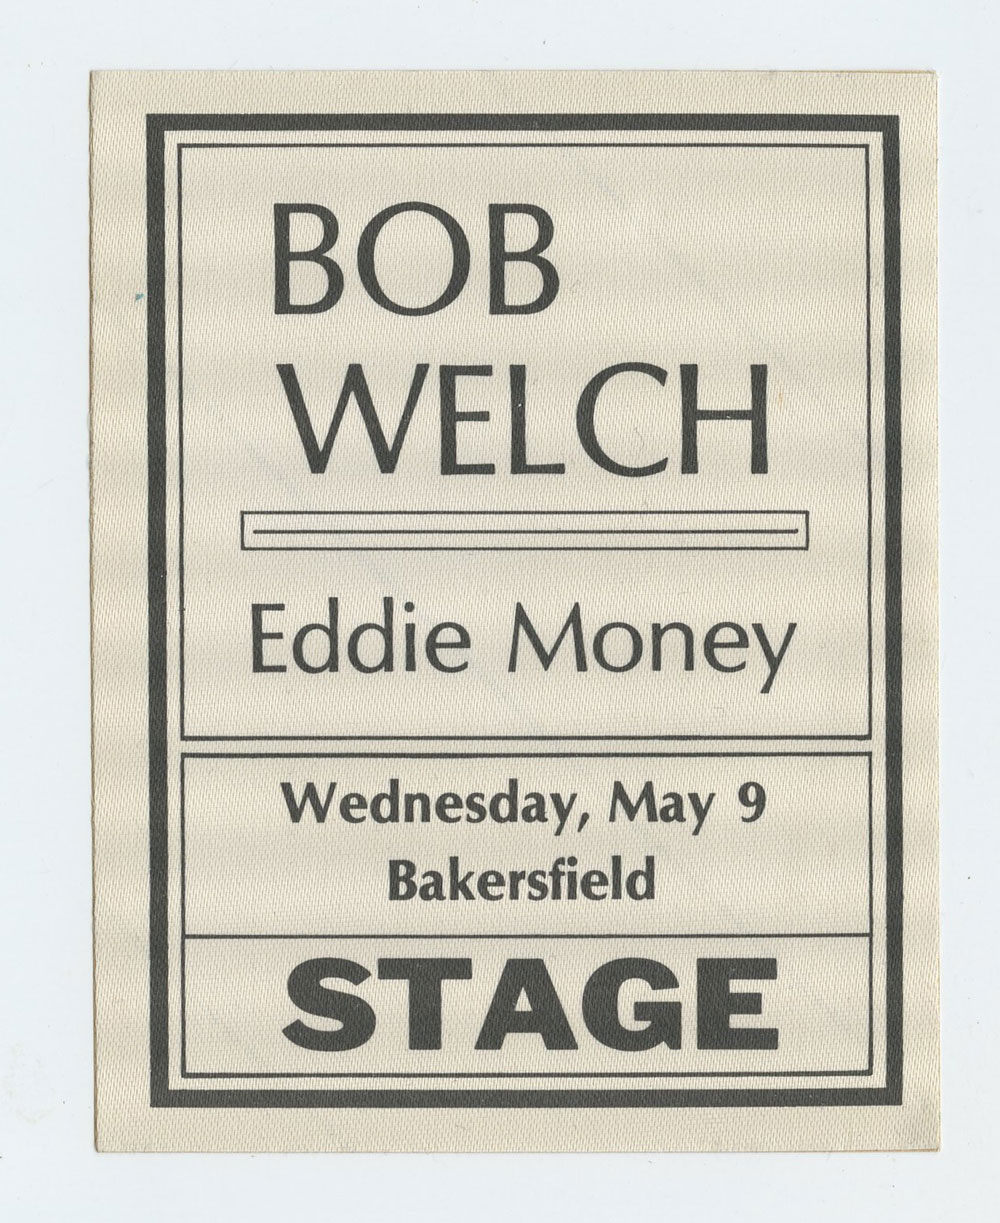 Bob Welch Eddie Money 1984 May 9 Bakersfield Backstage Pass